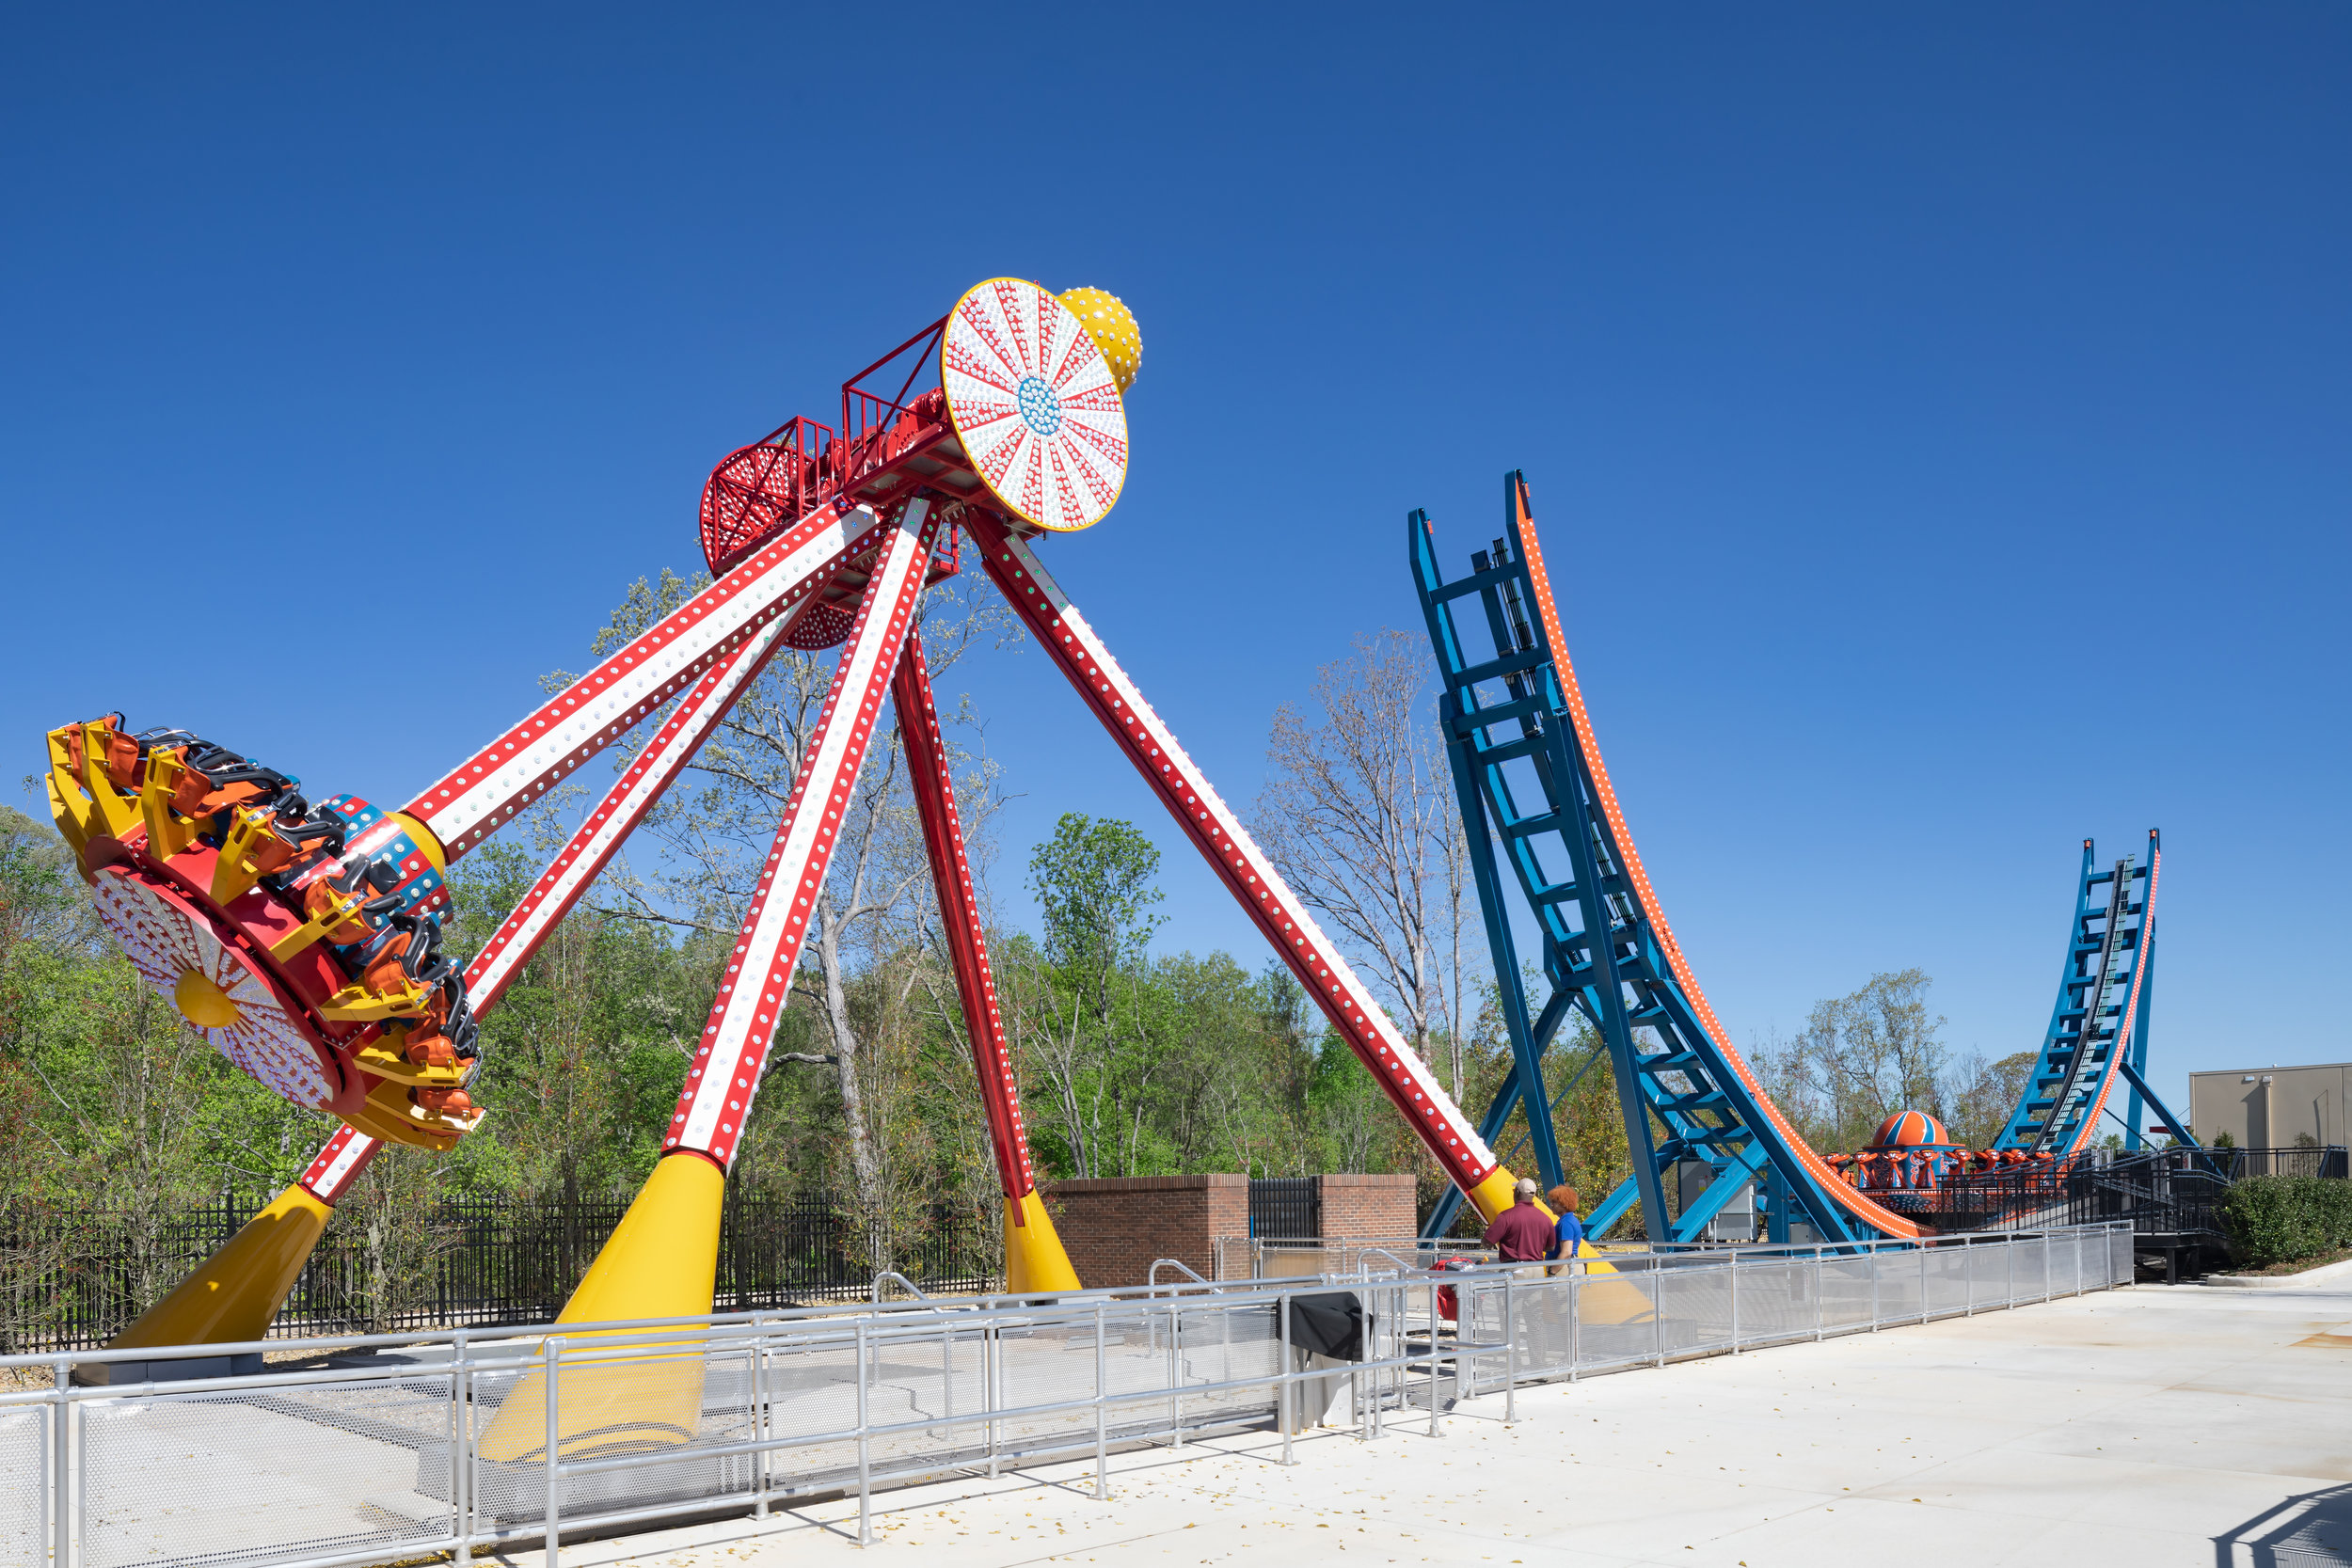 ADW-Entertainment-Frankie's-Fun-Park-Huntersville-NC-Exterior-Rides.jpg